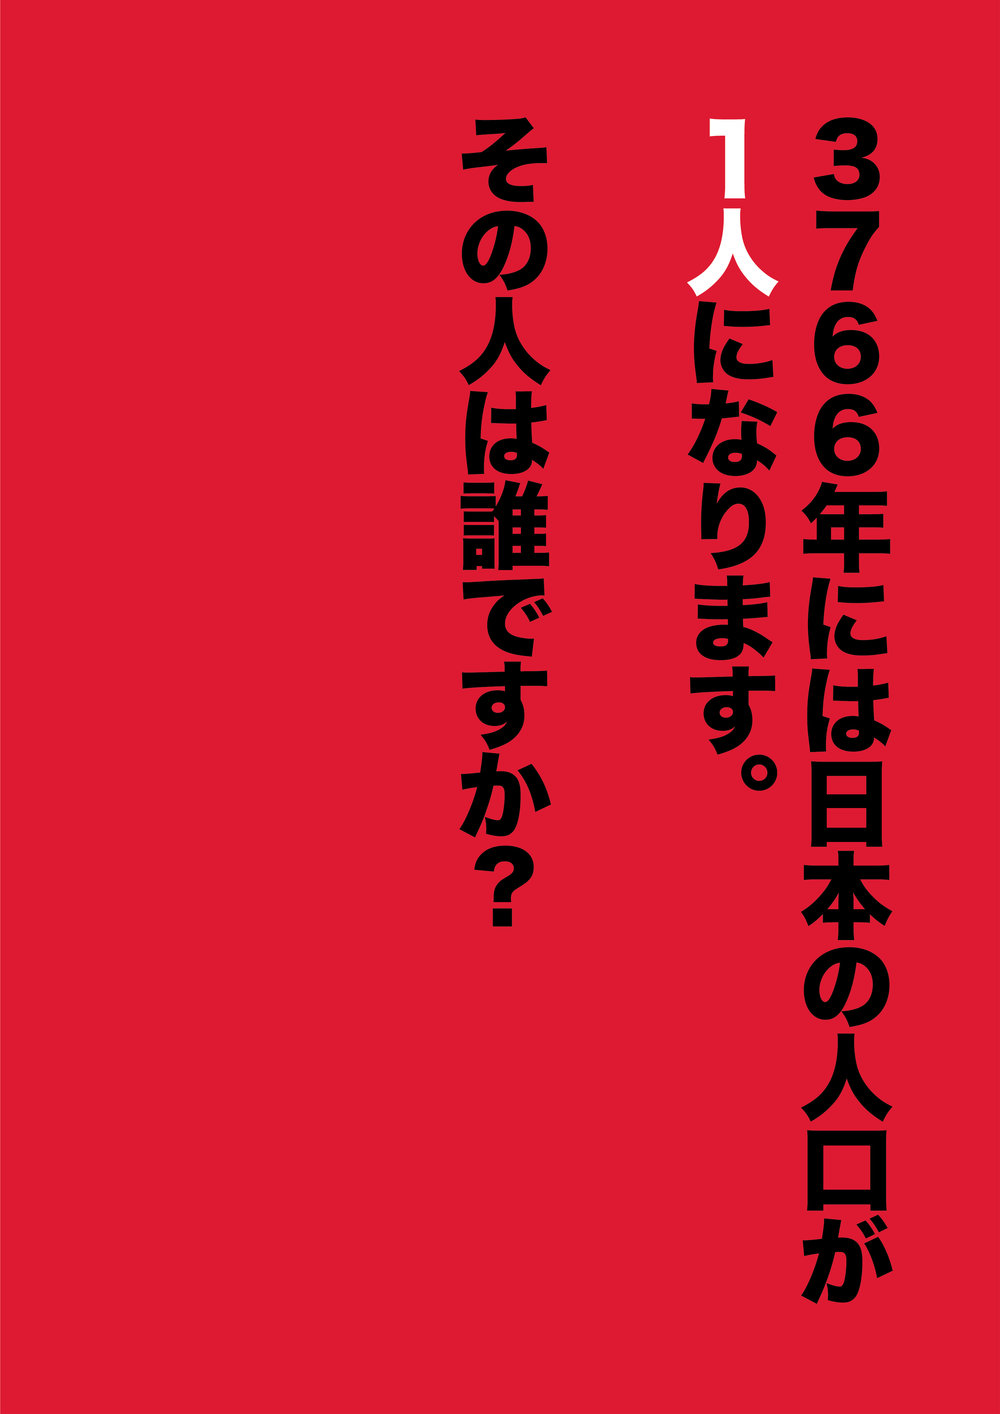 English: By the year 3766, there'll be 1 Japanese person left. Who will it be?